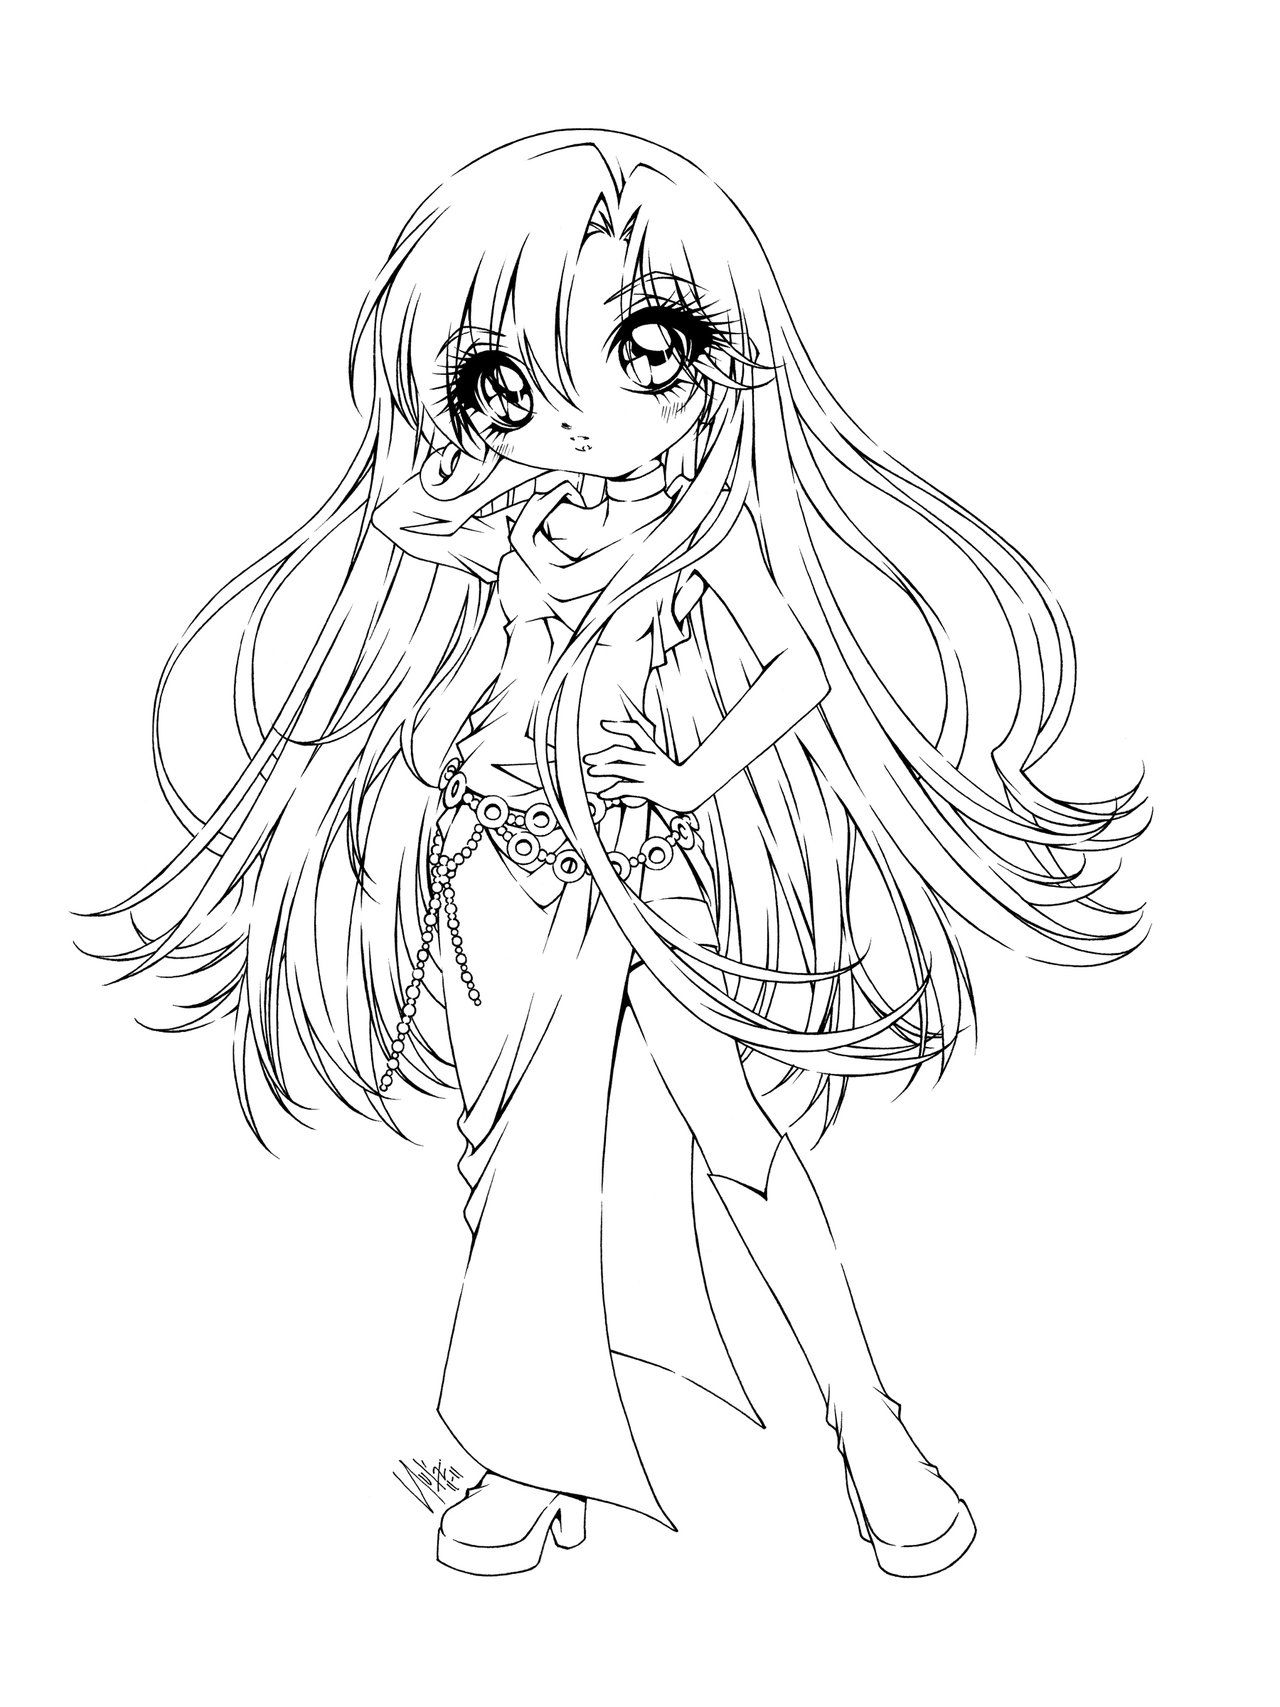 Cute Manga Coloring Pages At Getcolorings